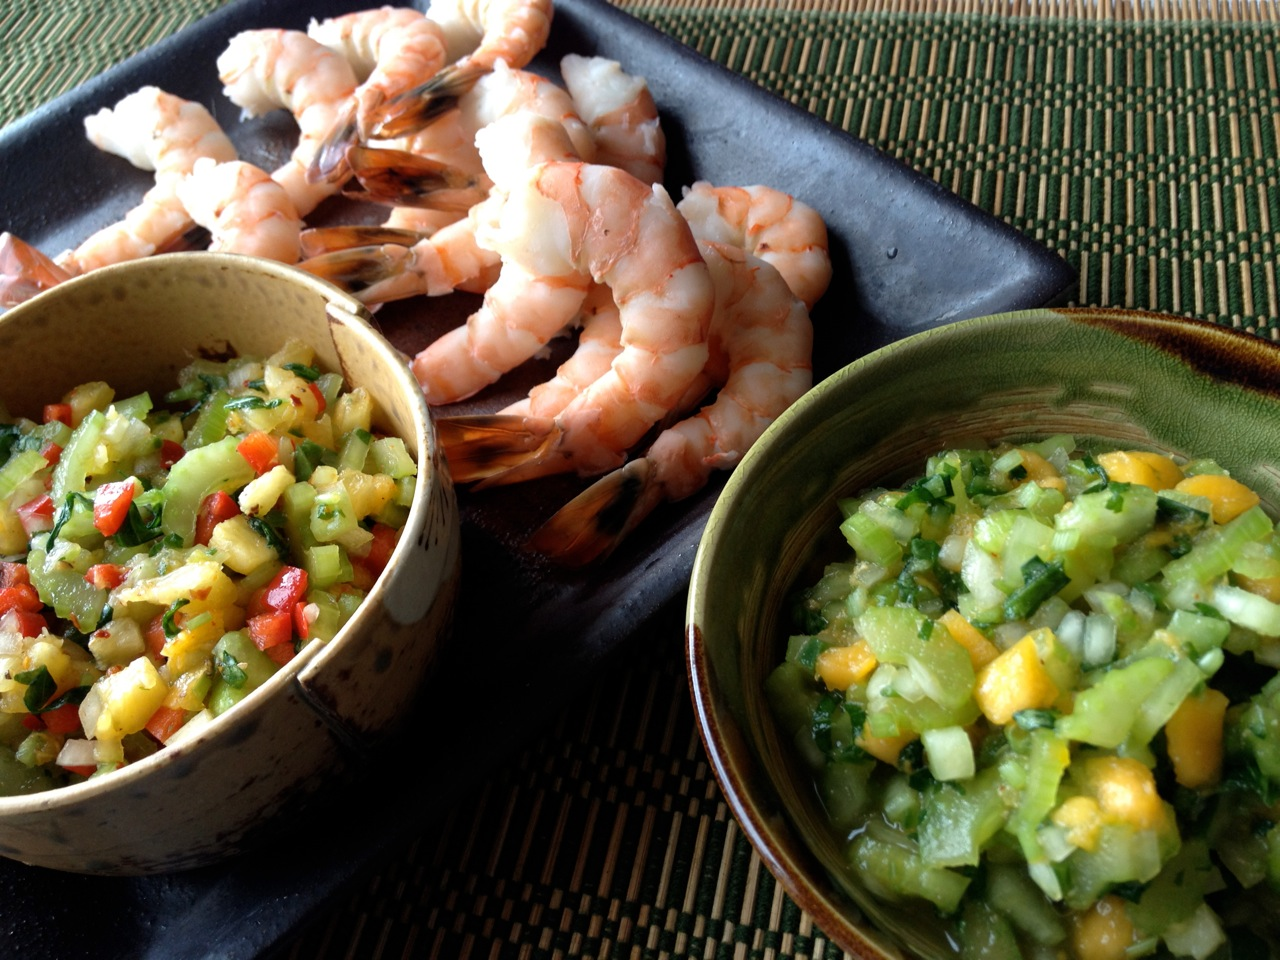 Celery Salsa 2 4 1: Spicy Pineapple & Mild Papaya with Steamed Shrimp or Tofu